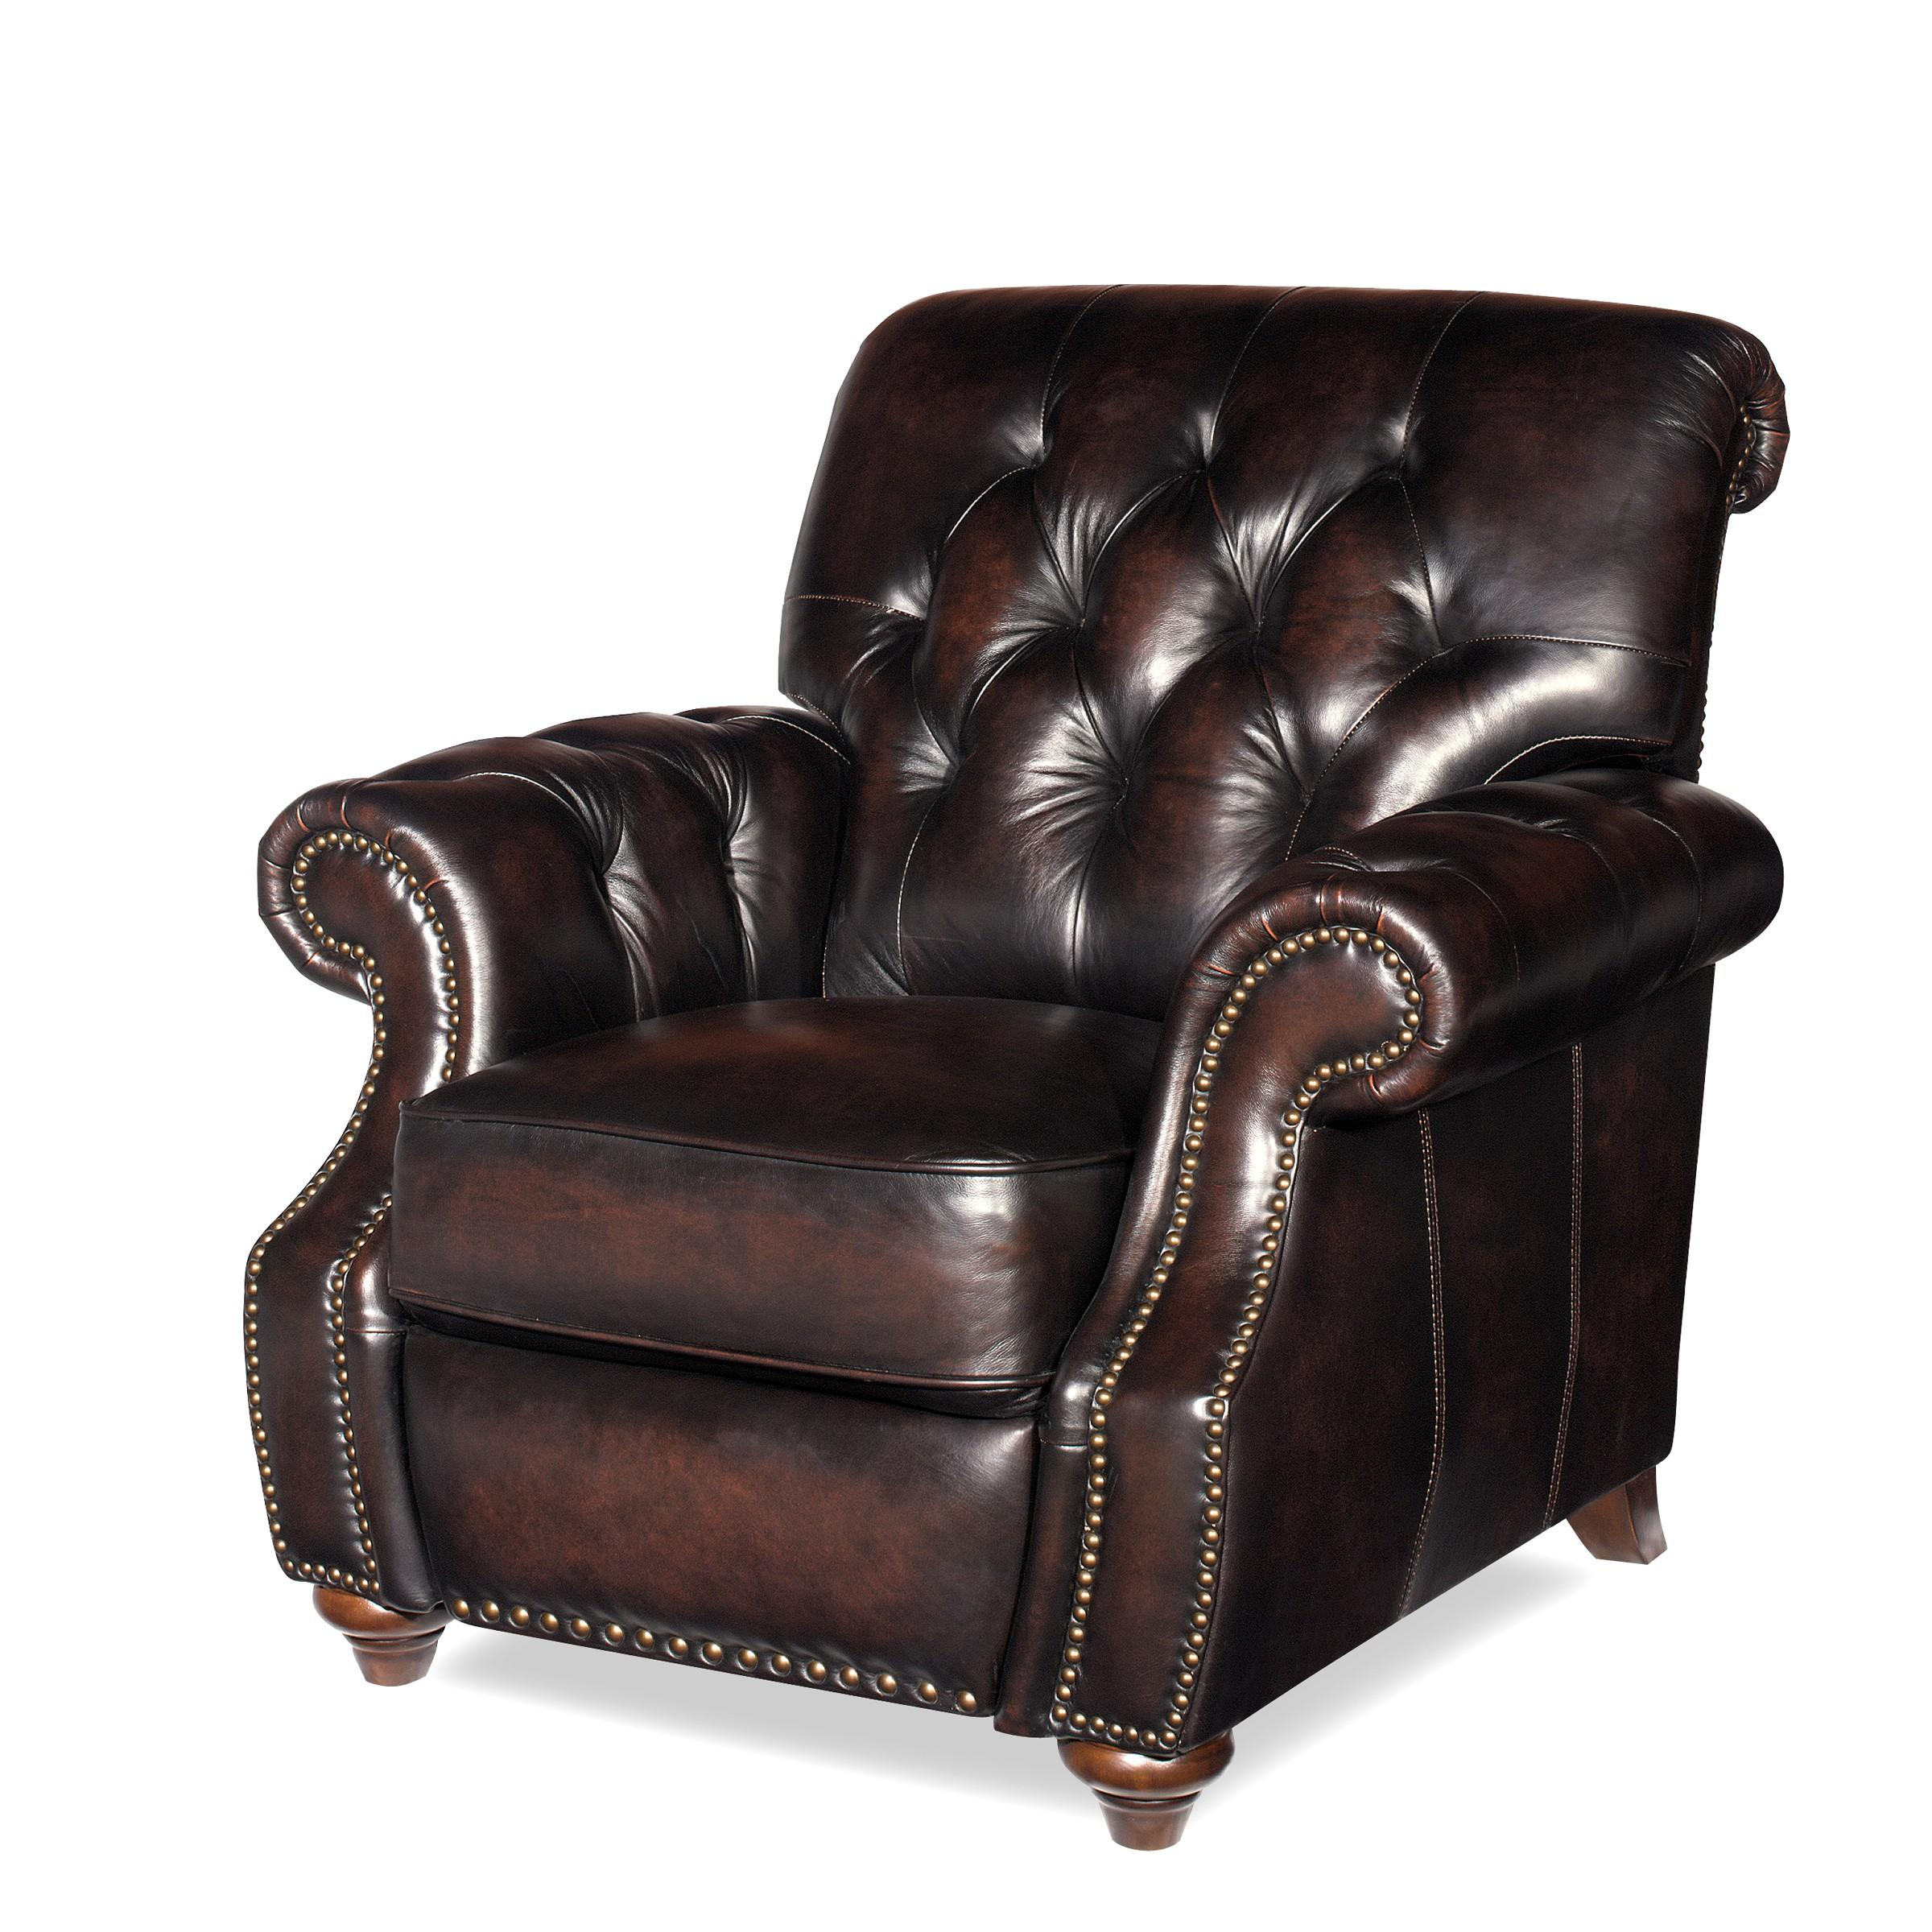 Set Electric Chair Lewis Chairs Black Garden Office Footstool Sofa Pertaining To Chocolate Brown Leather Tufted Swivel Chairs (View 18 of 25)